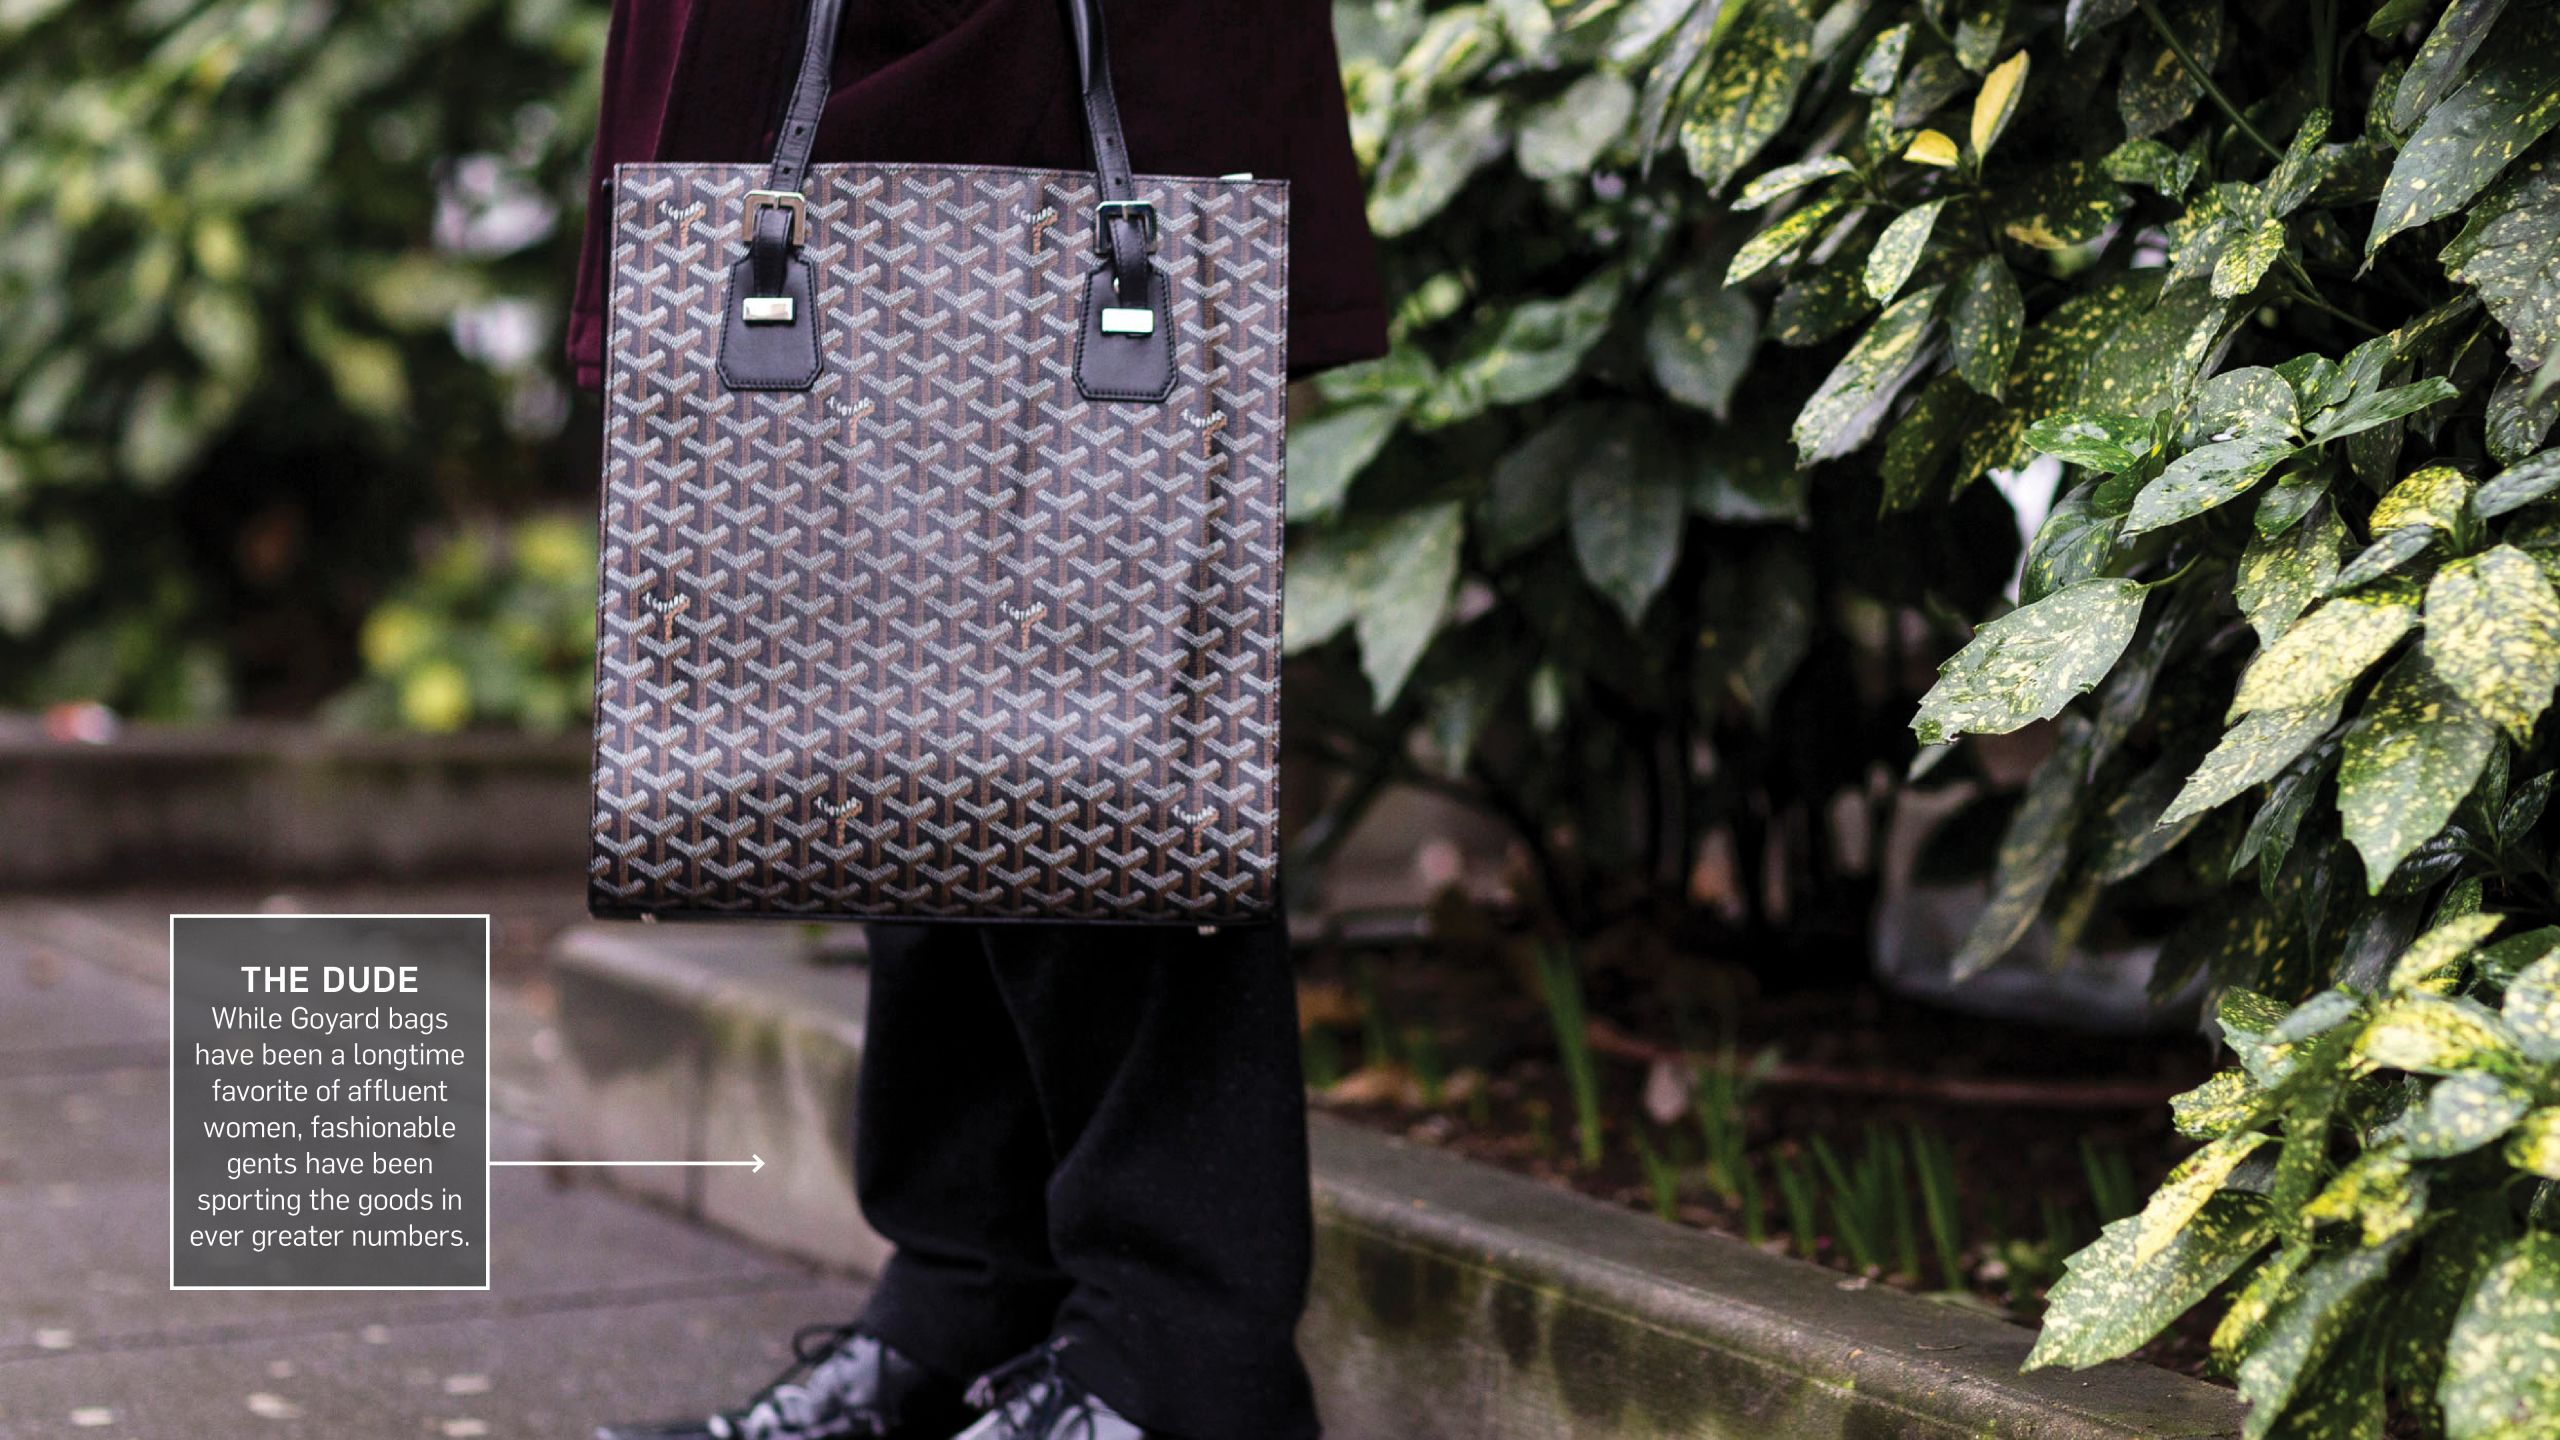 Goyard Won't Advertise, So How Is Its Bag So Enduringly